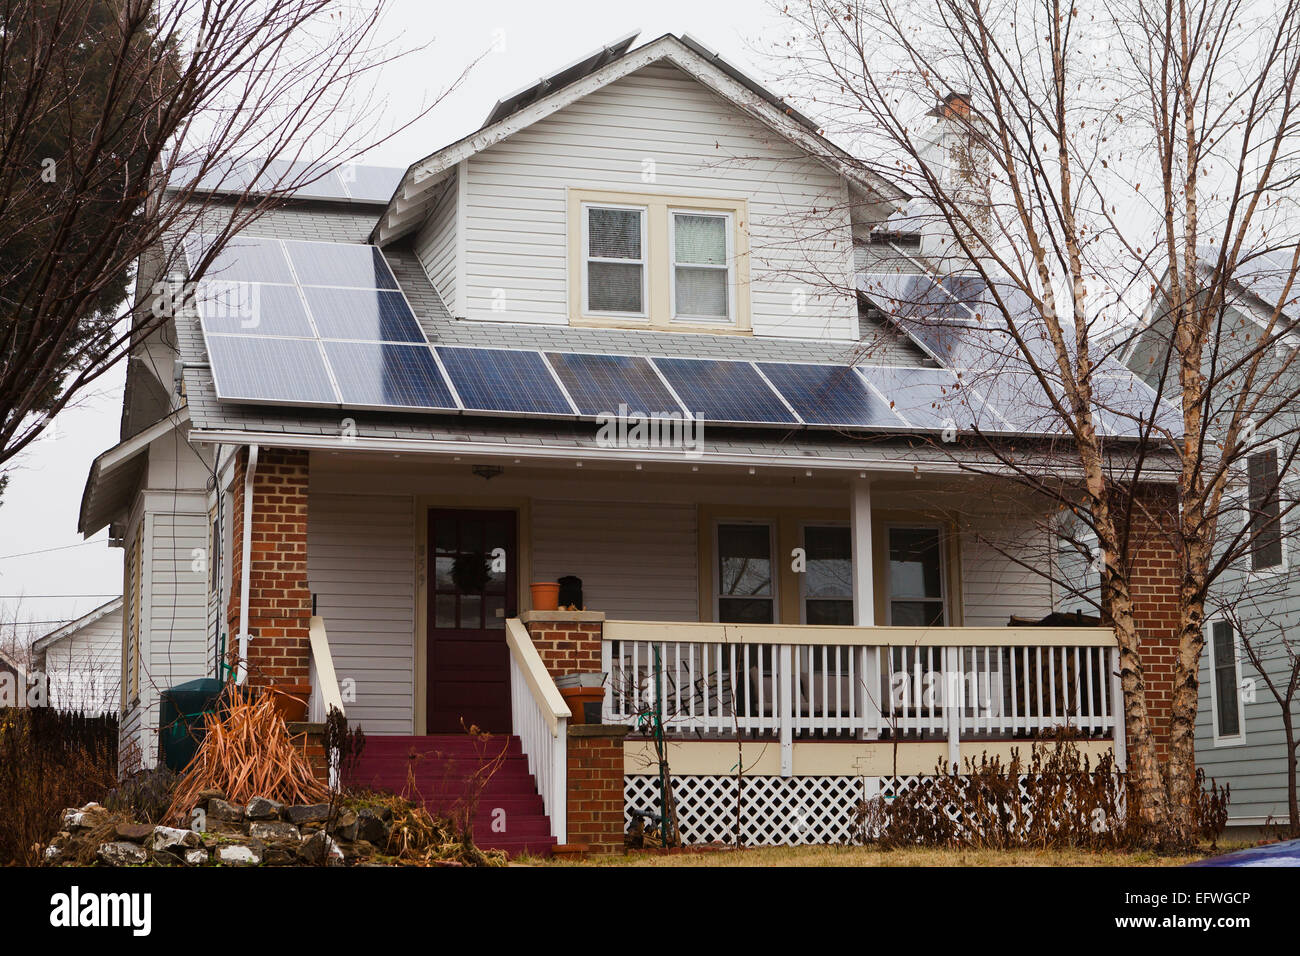 Solar panels on roof of small house - USA - Stock Image